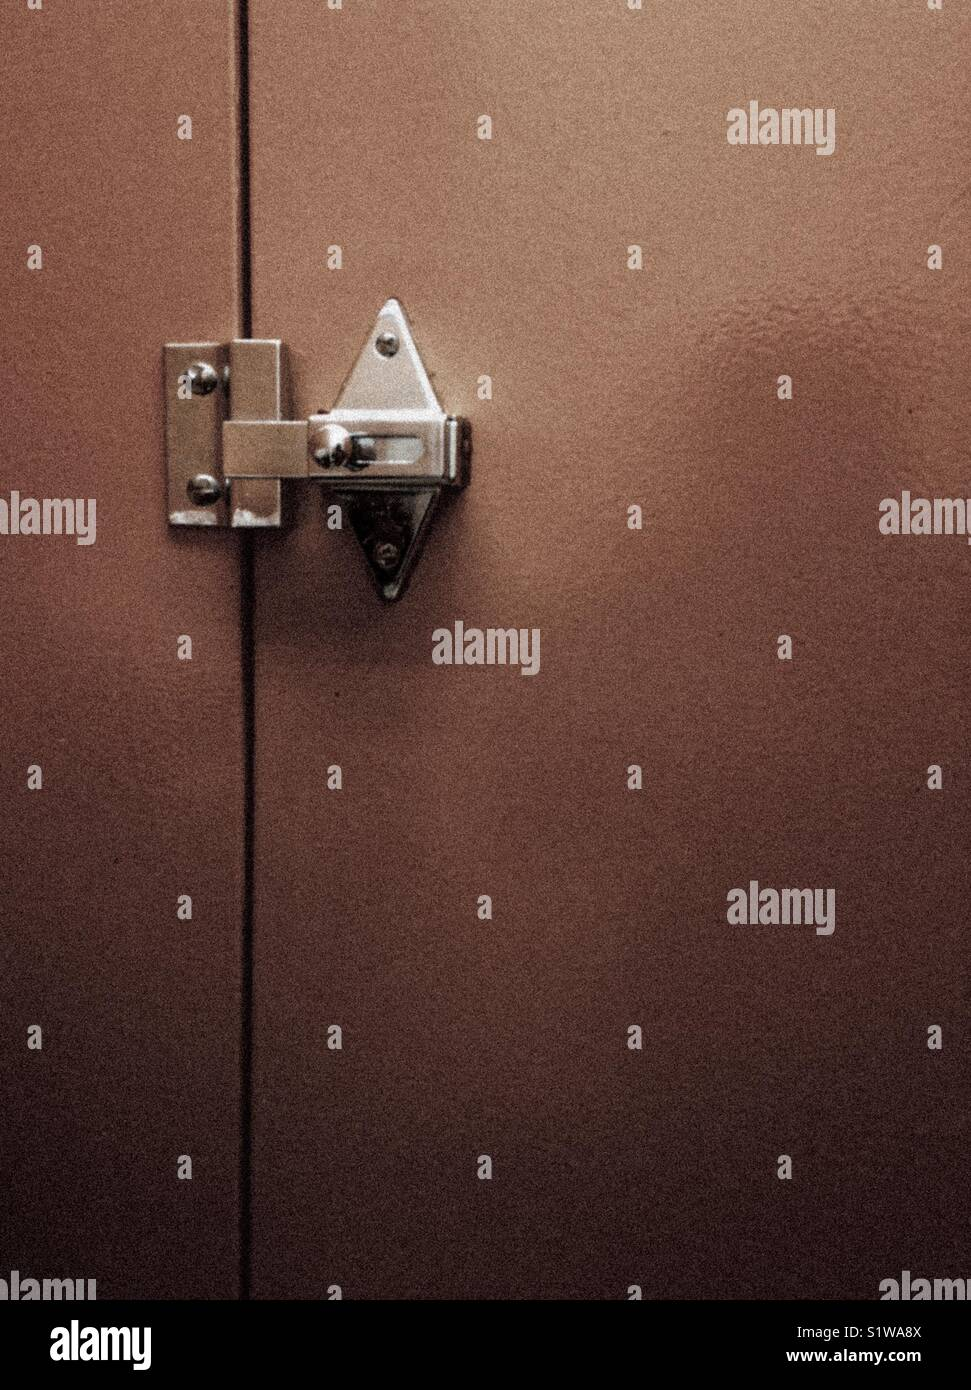 View From Inside Public Bathroom Stall Stock Photo Alamy - Bathroom stall handle